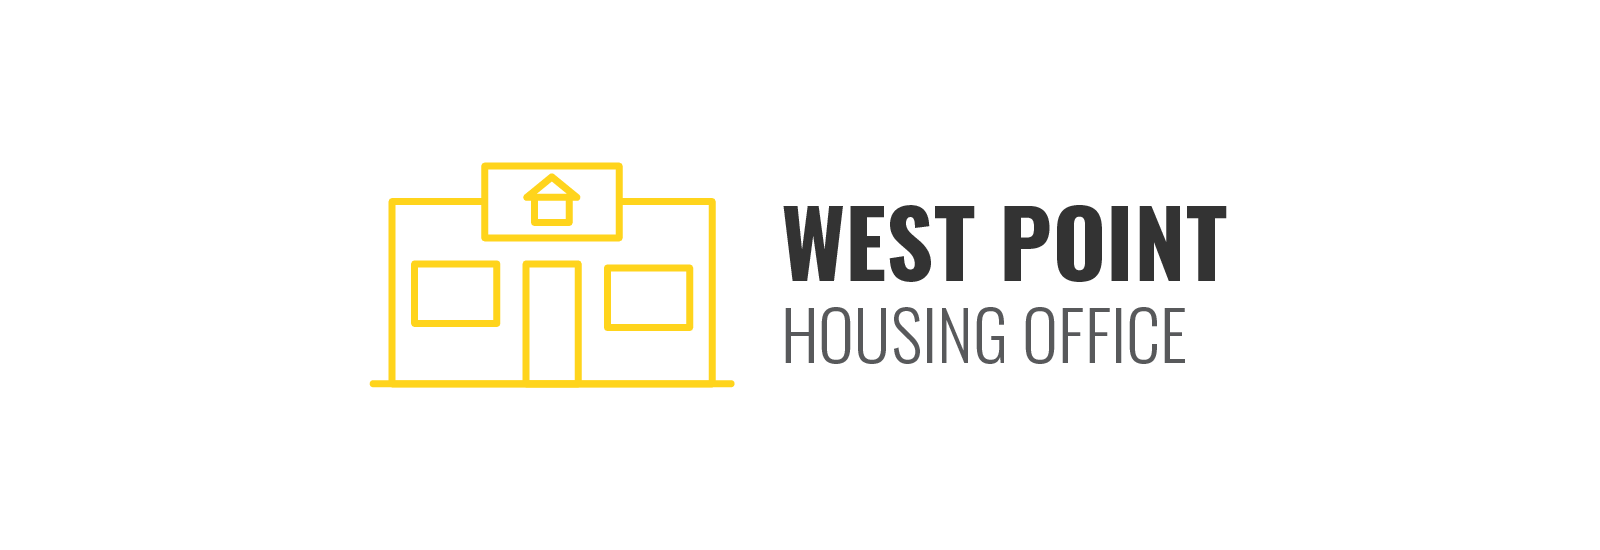 West Point Housing Office